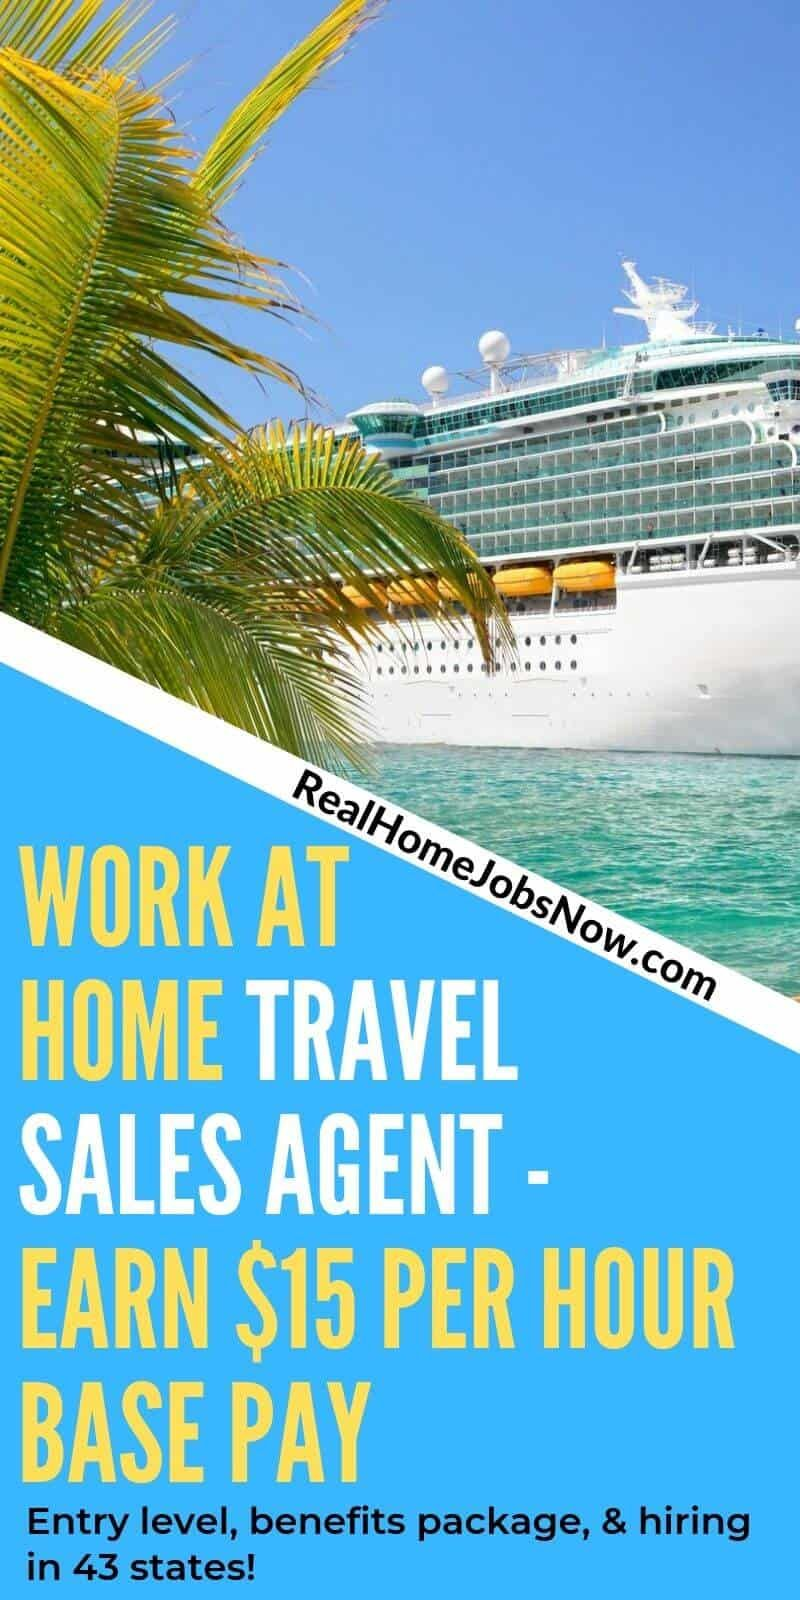 World Travel Holdings Travel Sales Agent Hiring Now in